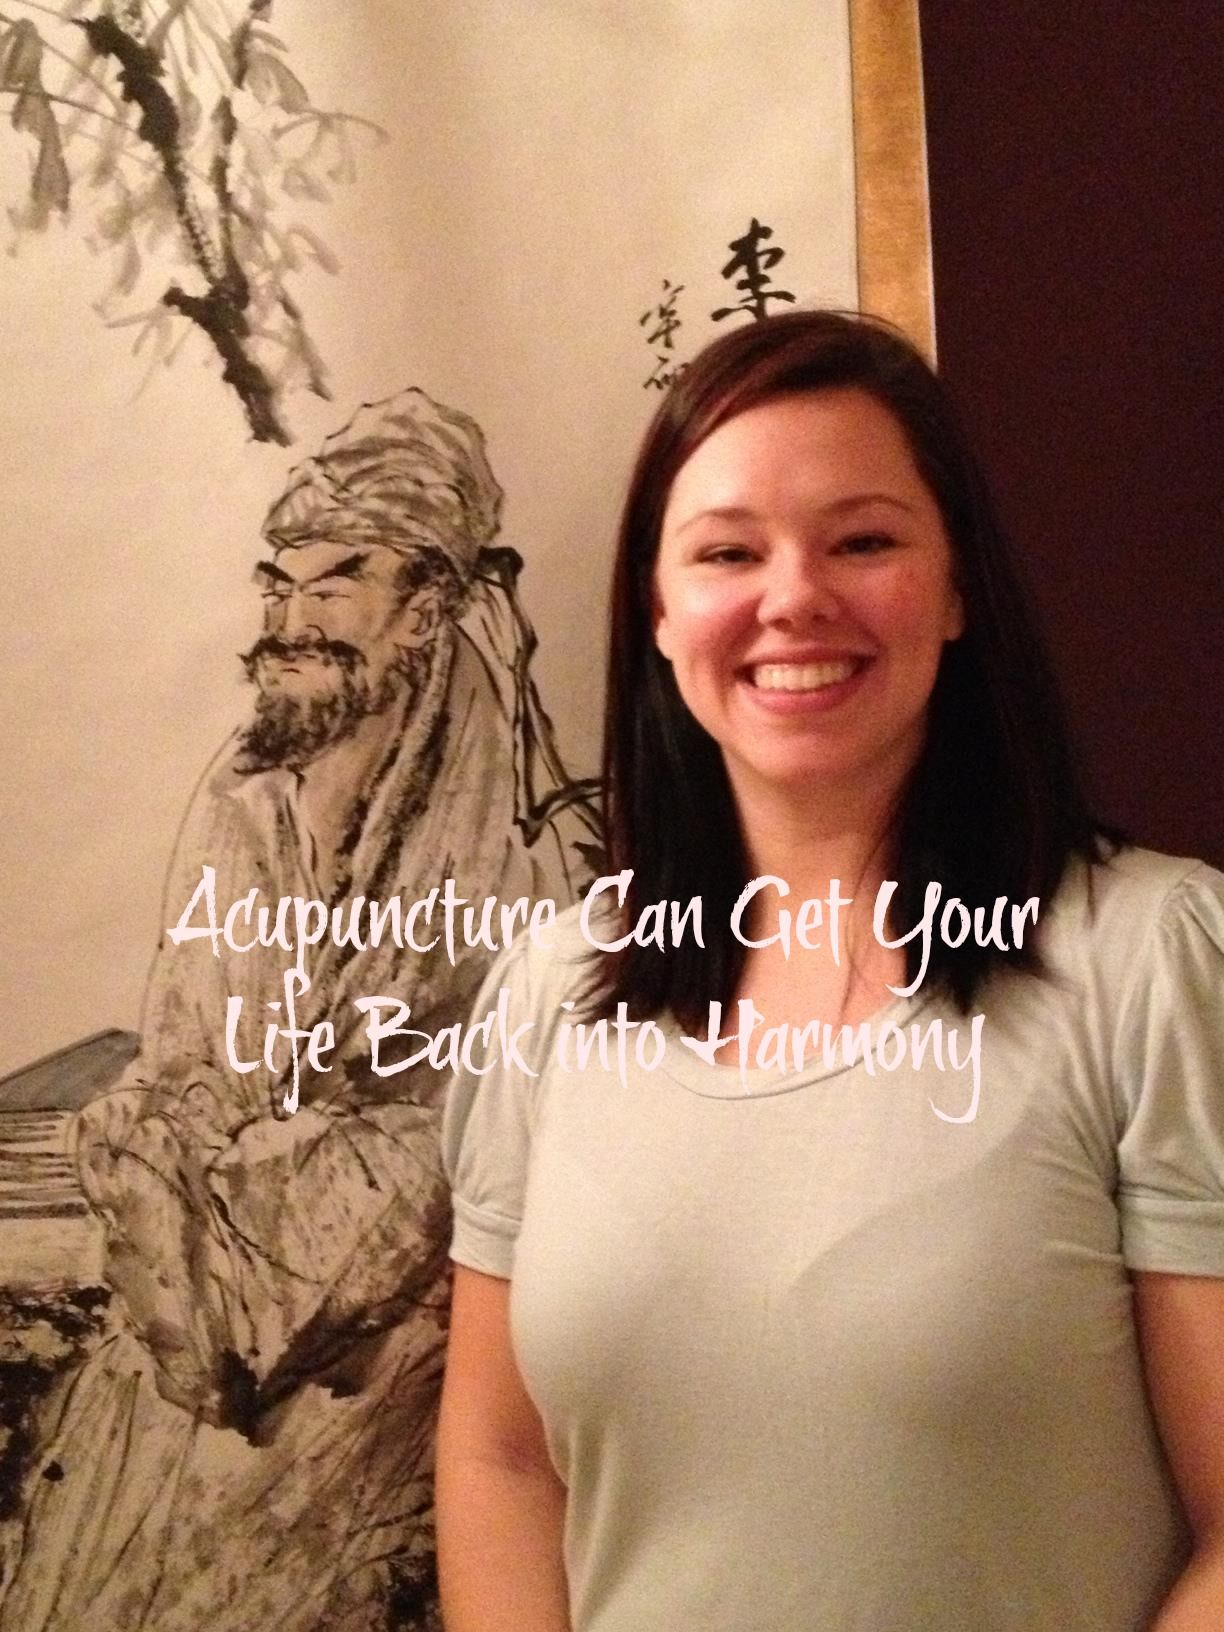 sarah fruetel kansas city acupuncturist is now at back and